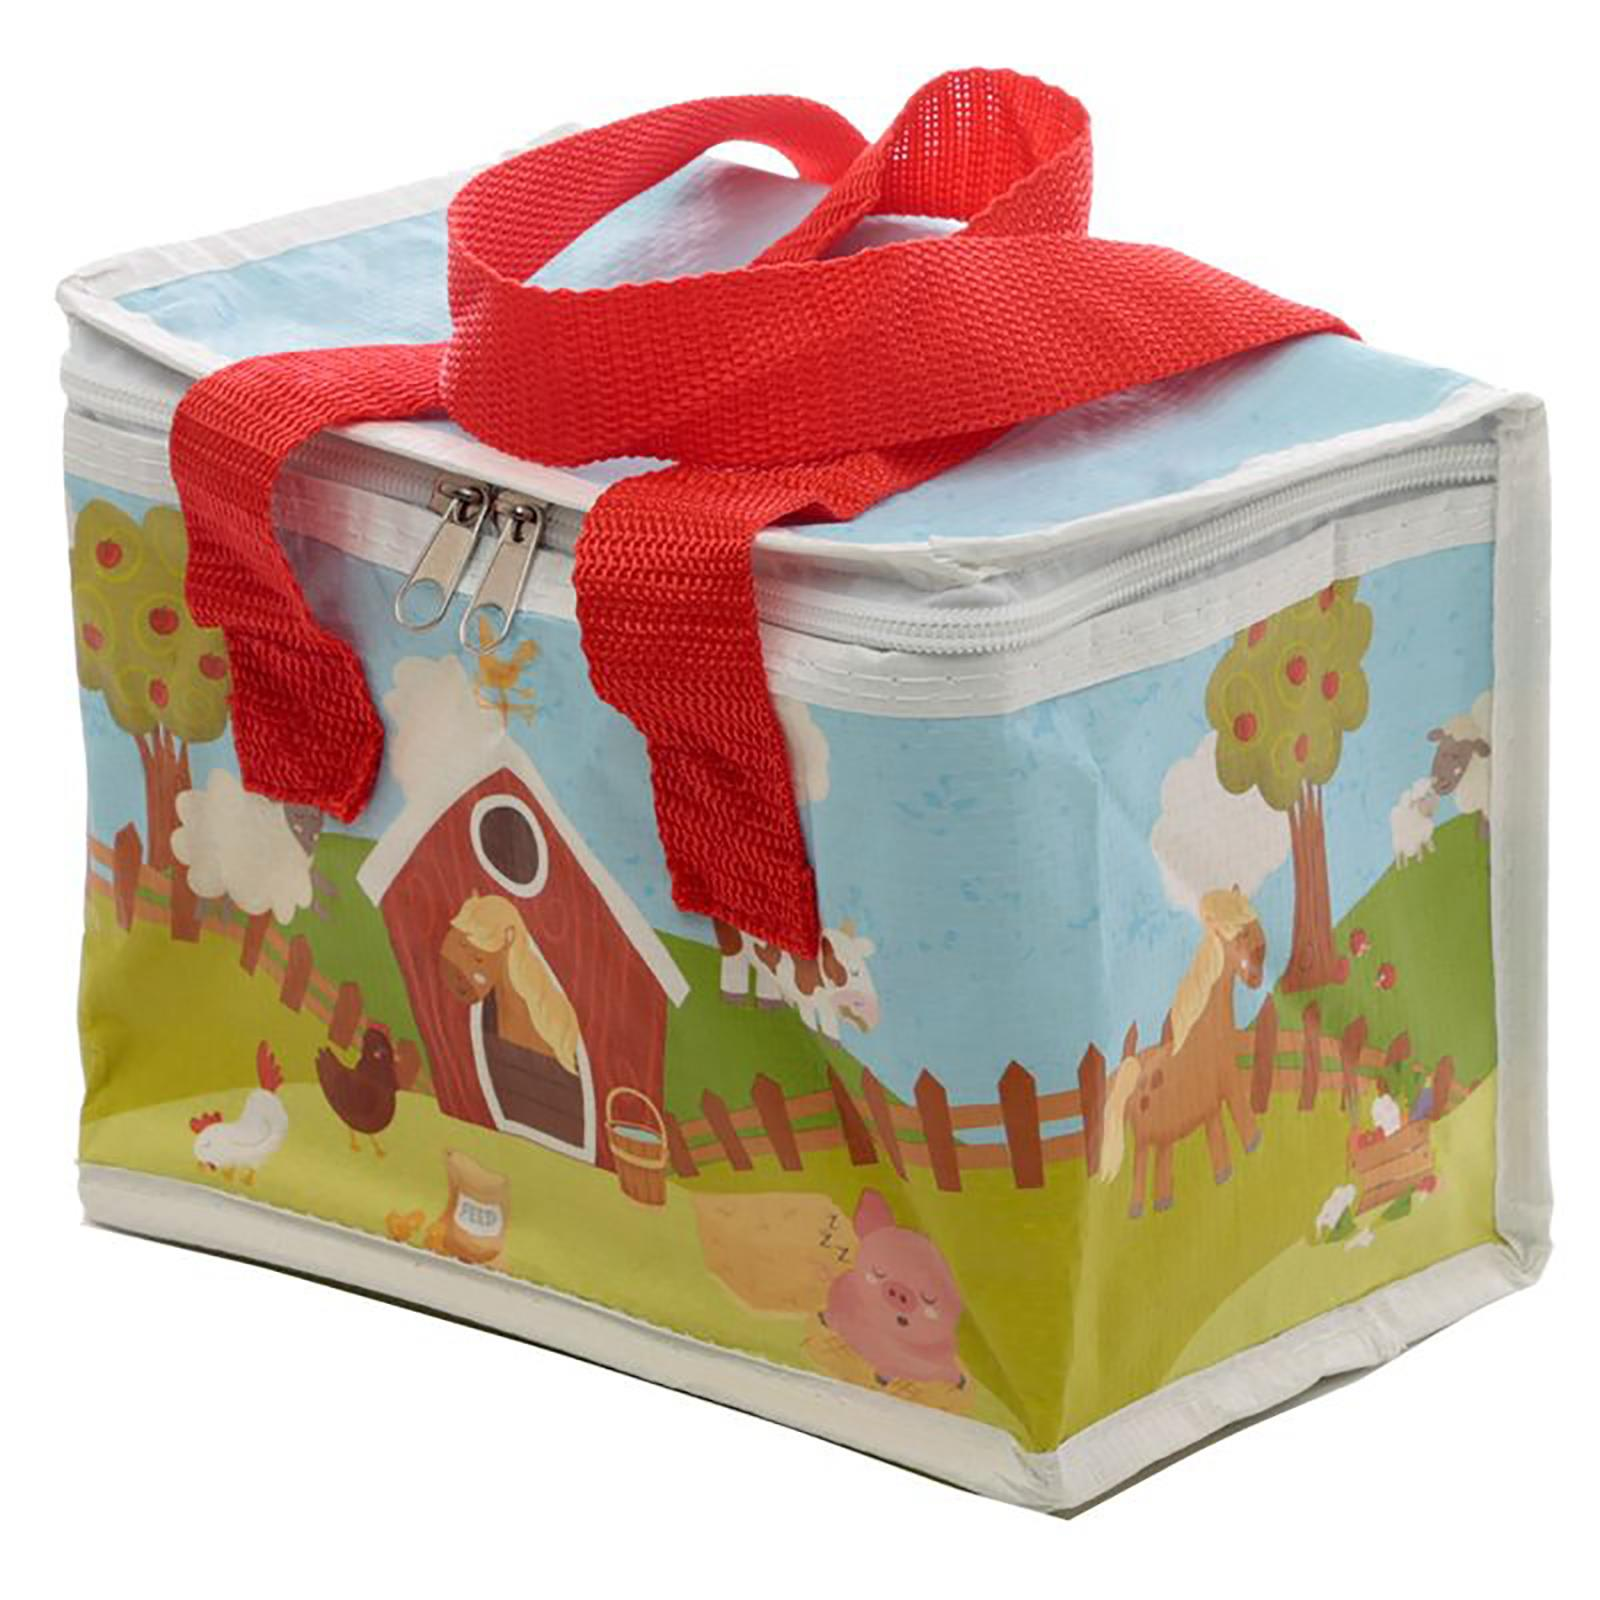 Cool-Bag-School-Picnic-Lunch-Box-Insulated-Small-Thermal-Cooler-Novelty-5-Litre miniatura 24